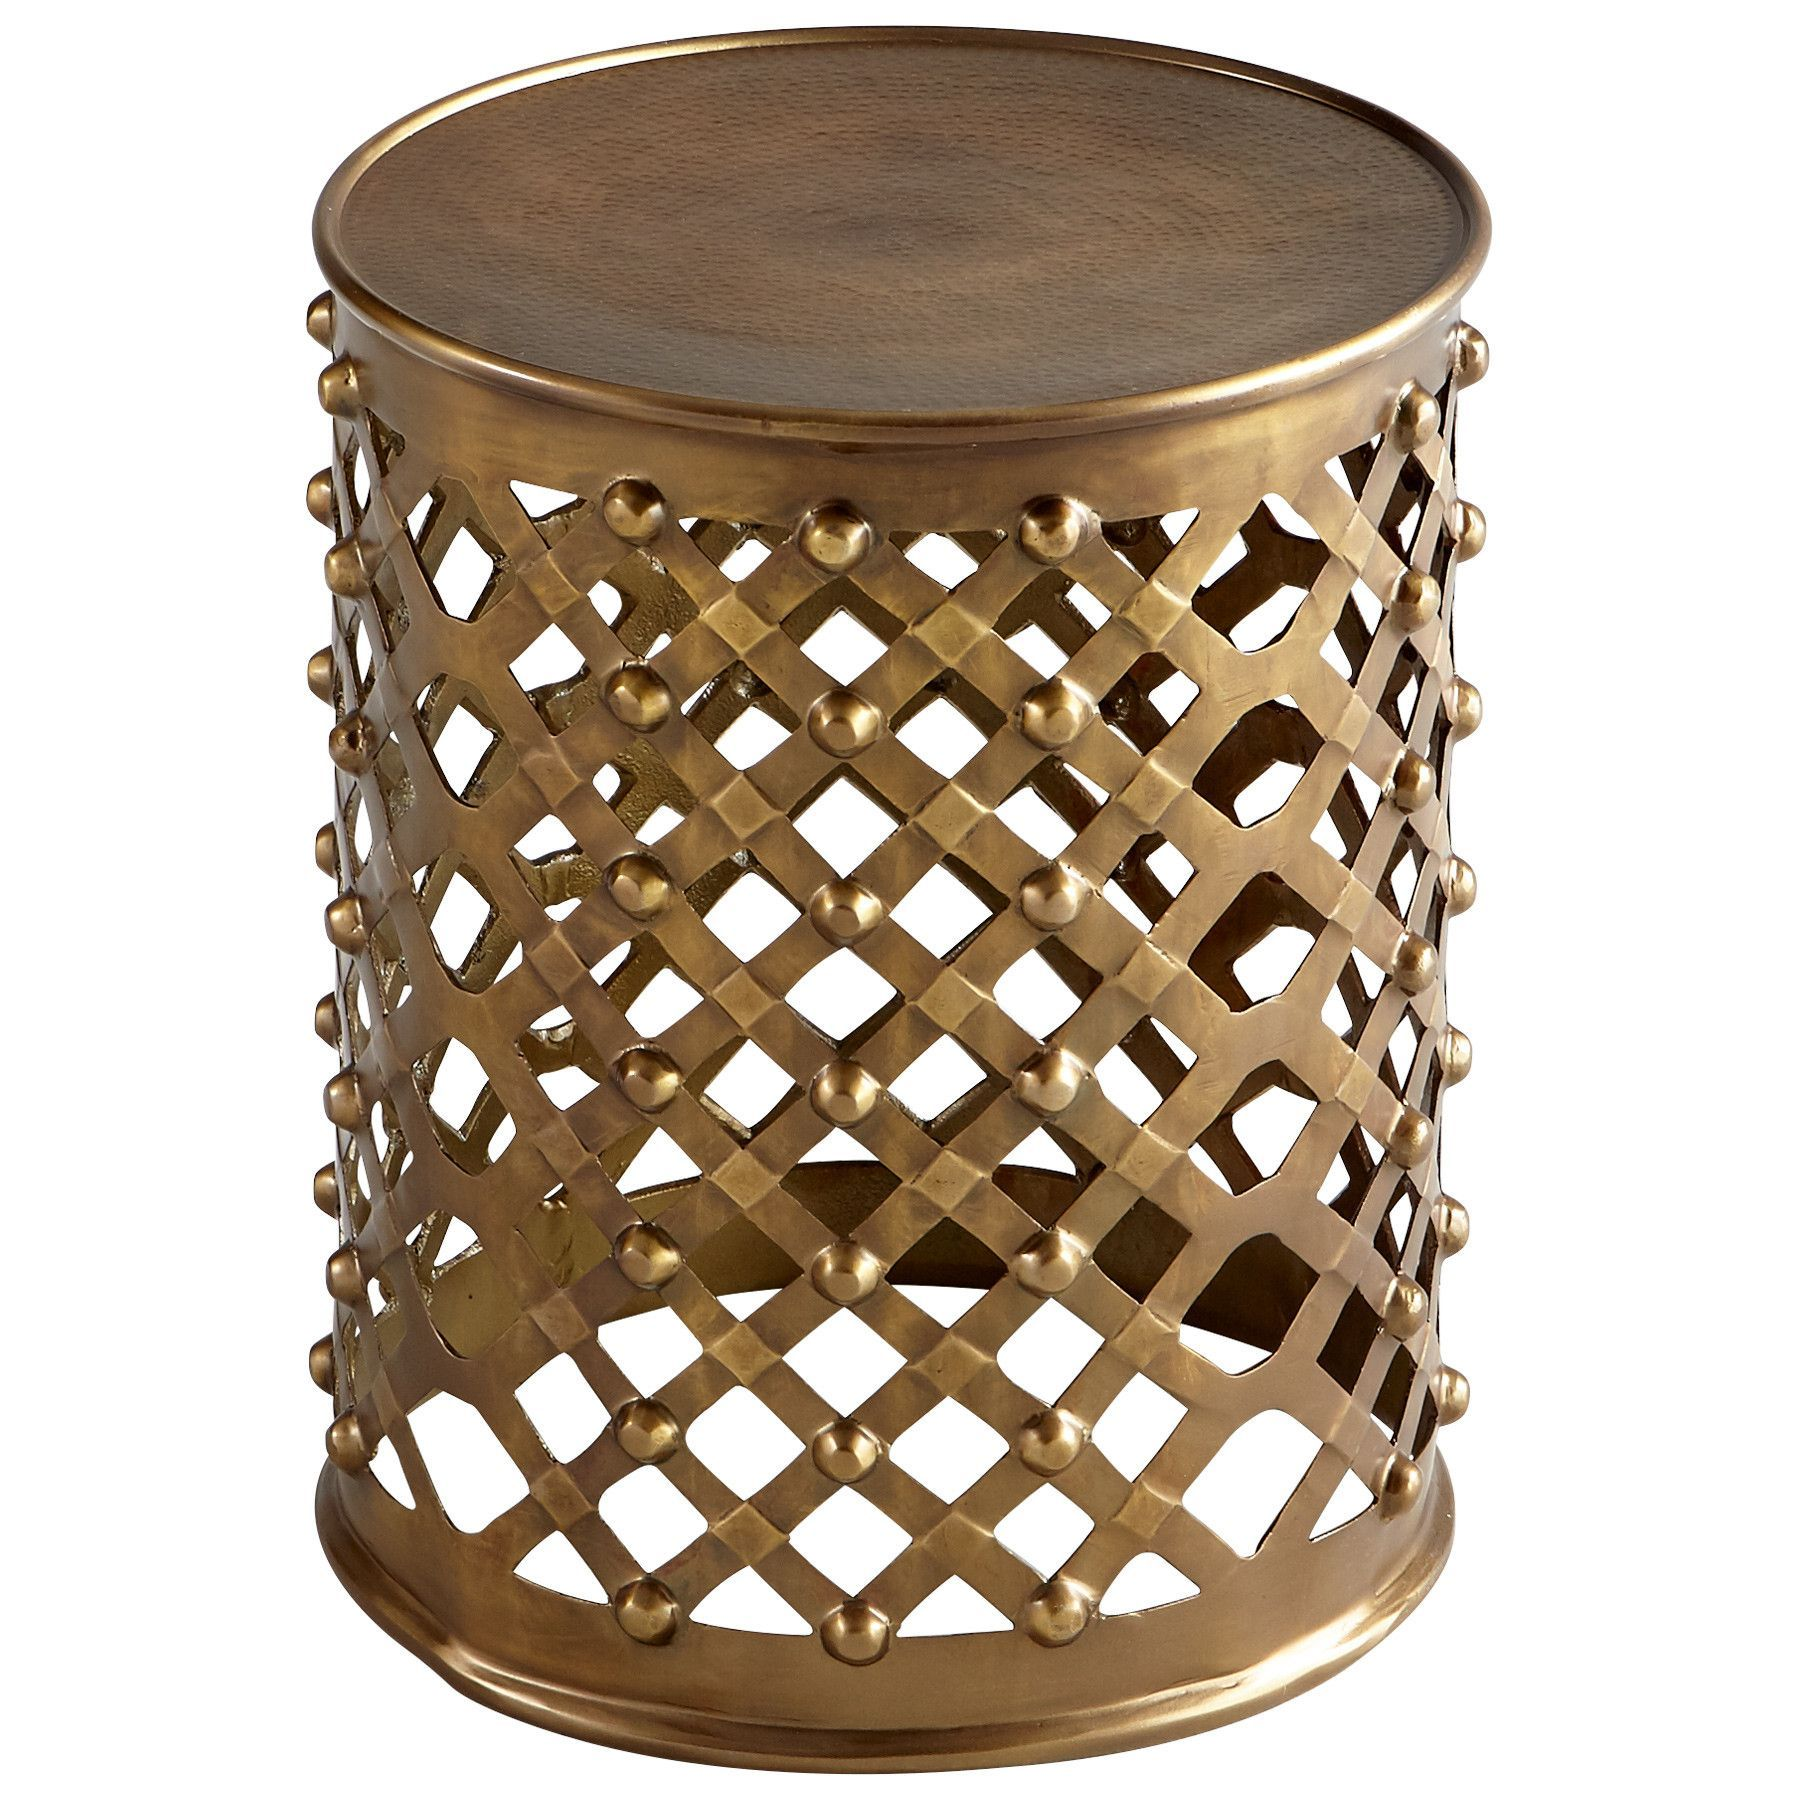 alden side table bronze granby cylinder drum accent threshold mirrored dining rose gold home decor fretwork coffee entrance furniture outdoor metal living room couches ashley